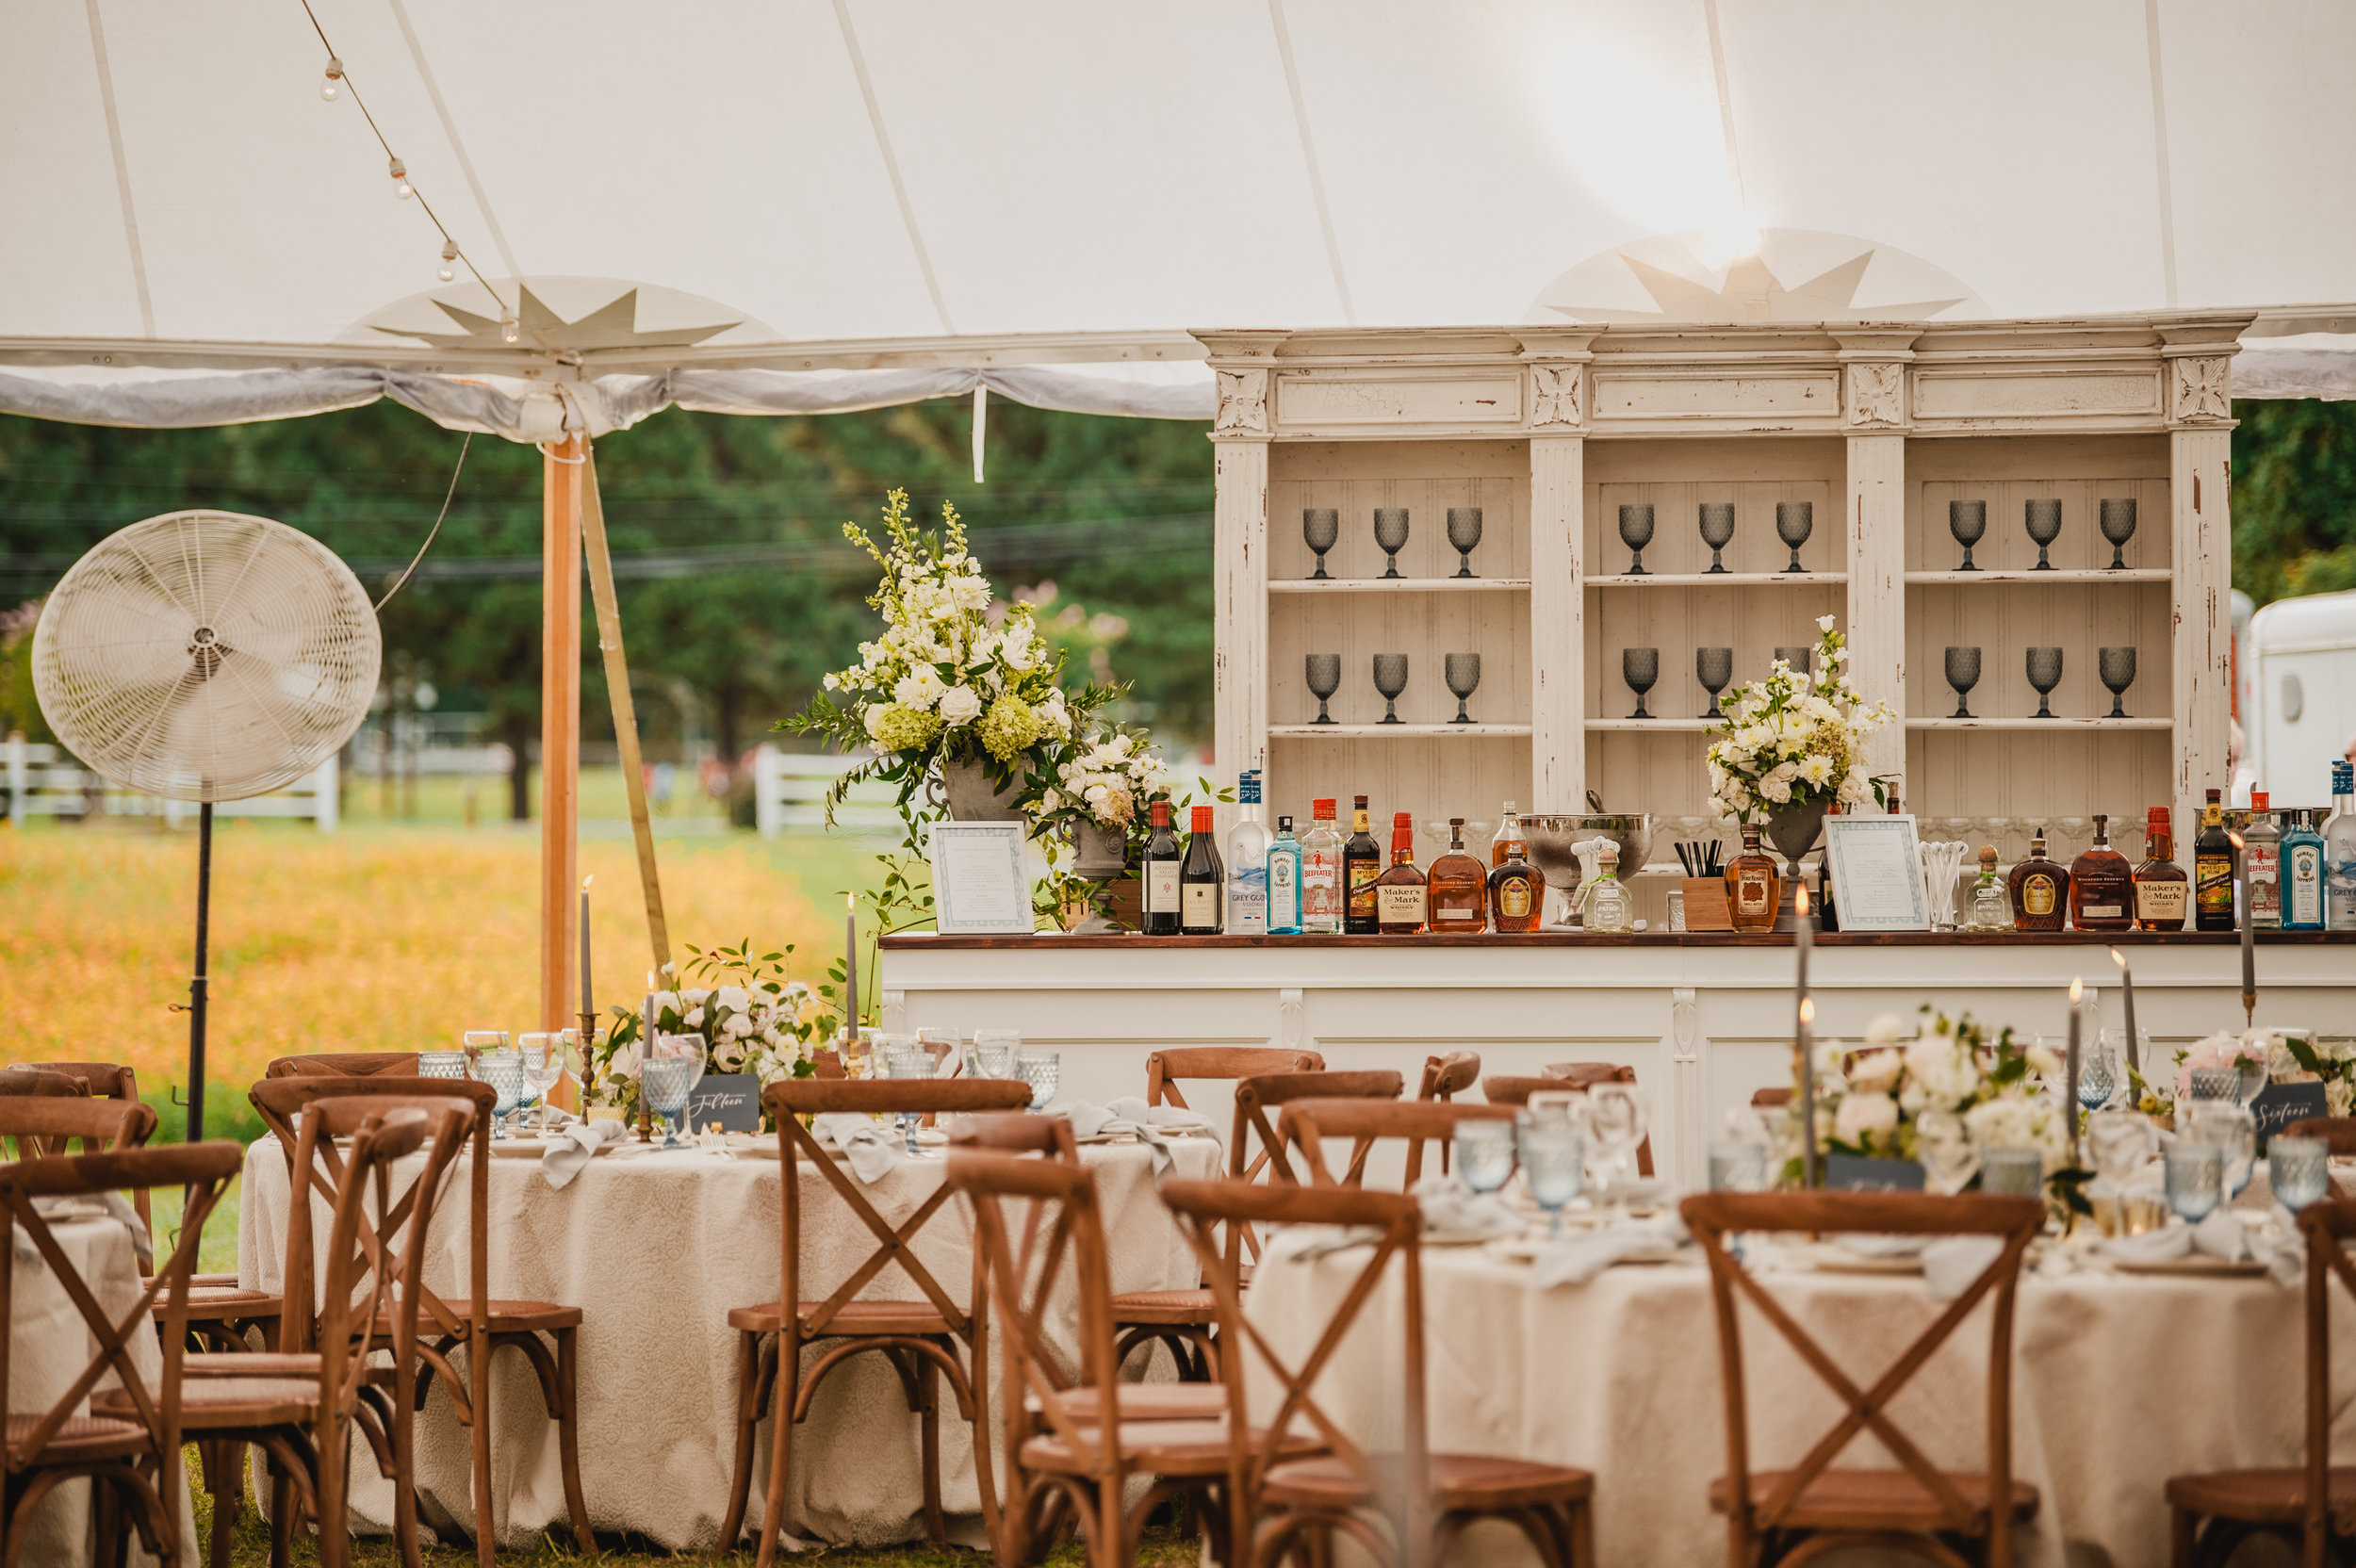 A Garden Party Florist, Maryland Wedding, Inn at Perry Cabin, Bar Decor, Wedding Bar, Tyler Boye Photography